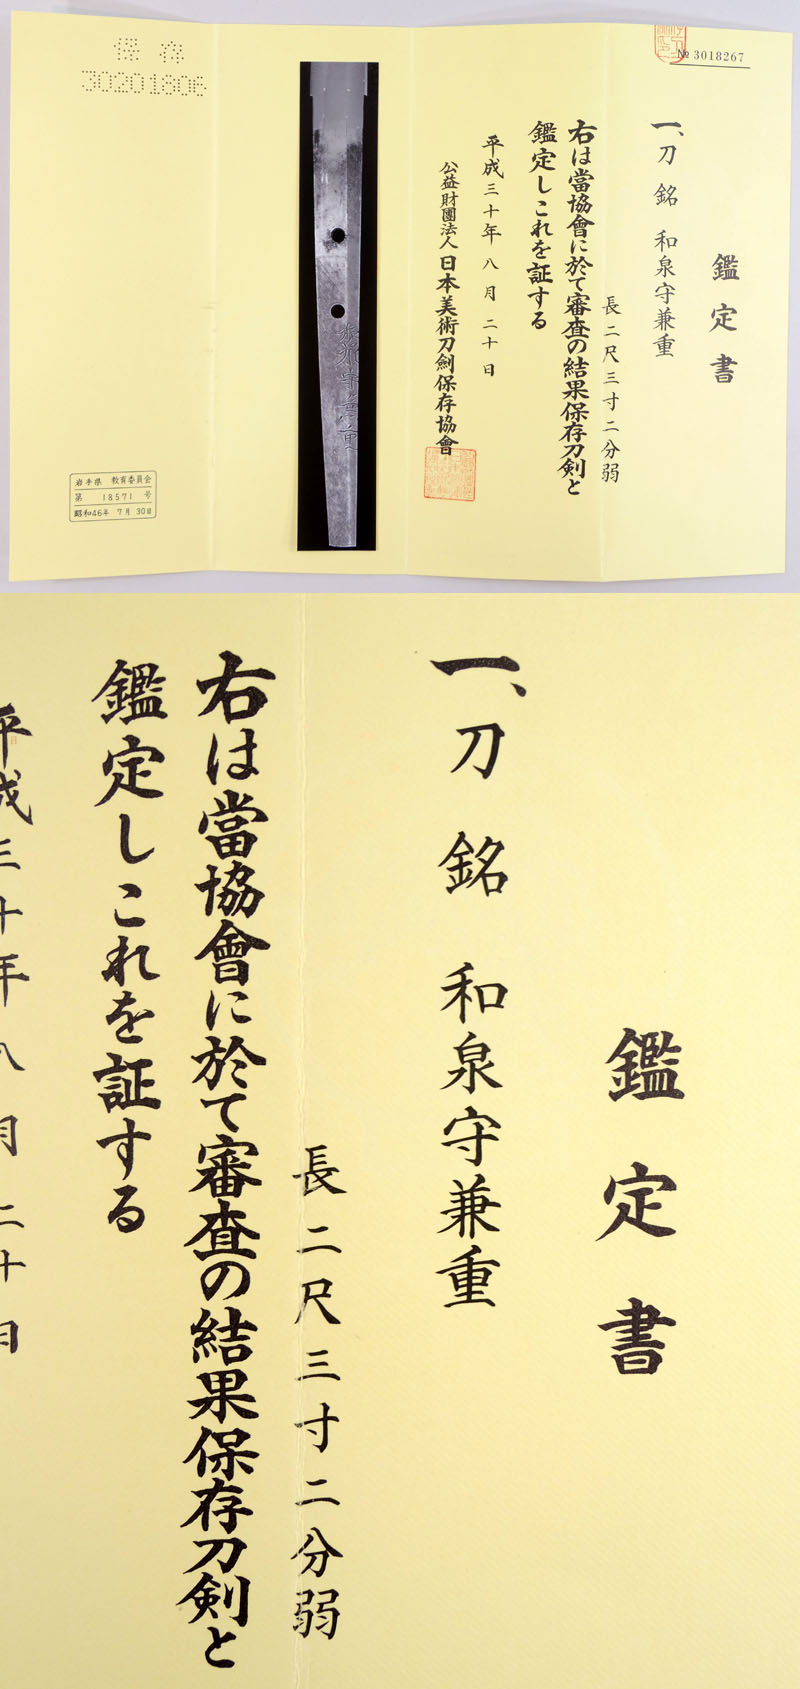 和泉守兼重 Picture of Certificate